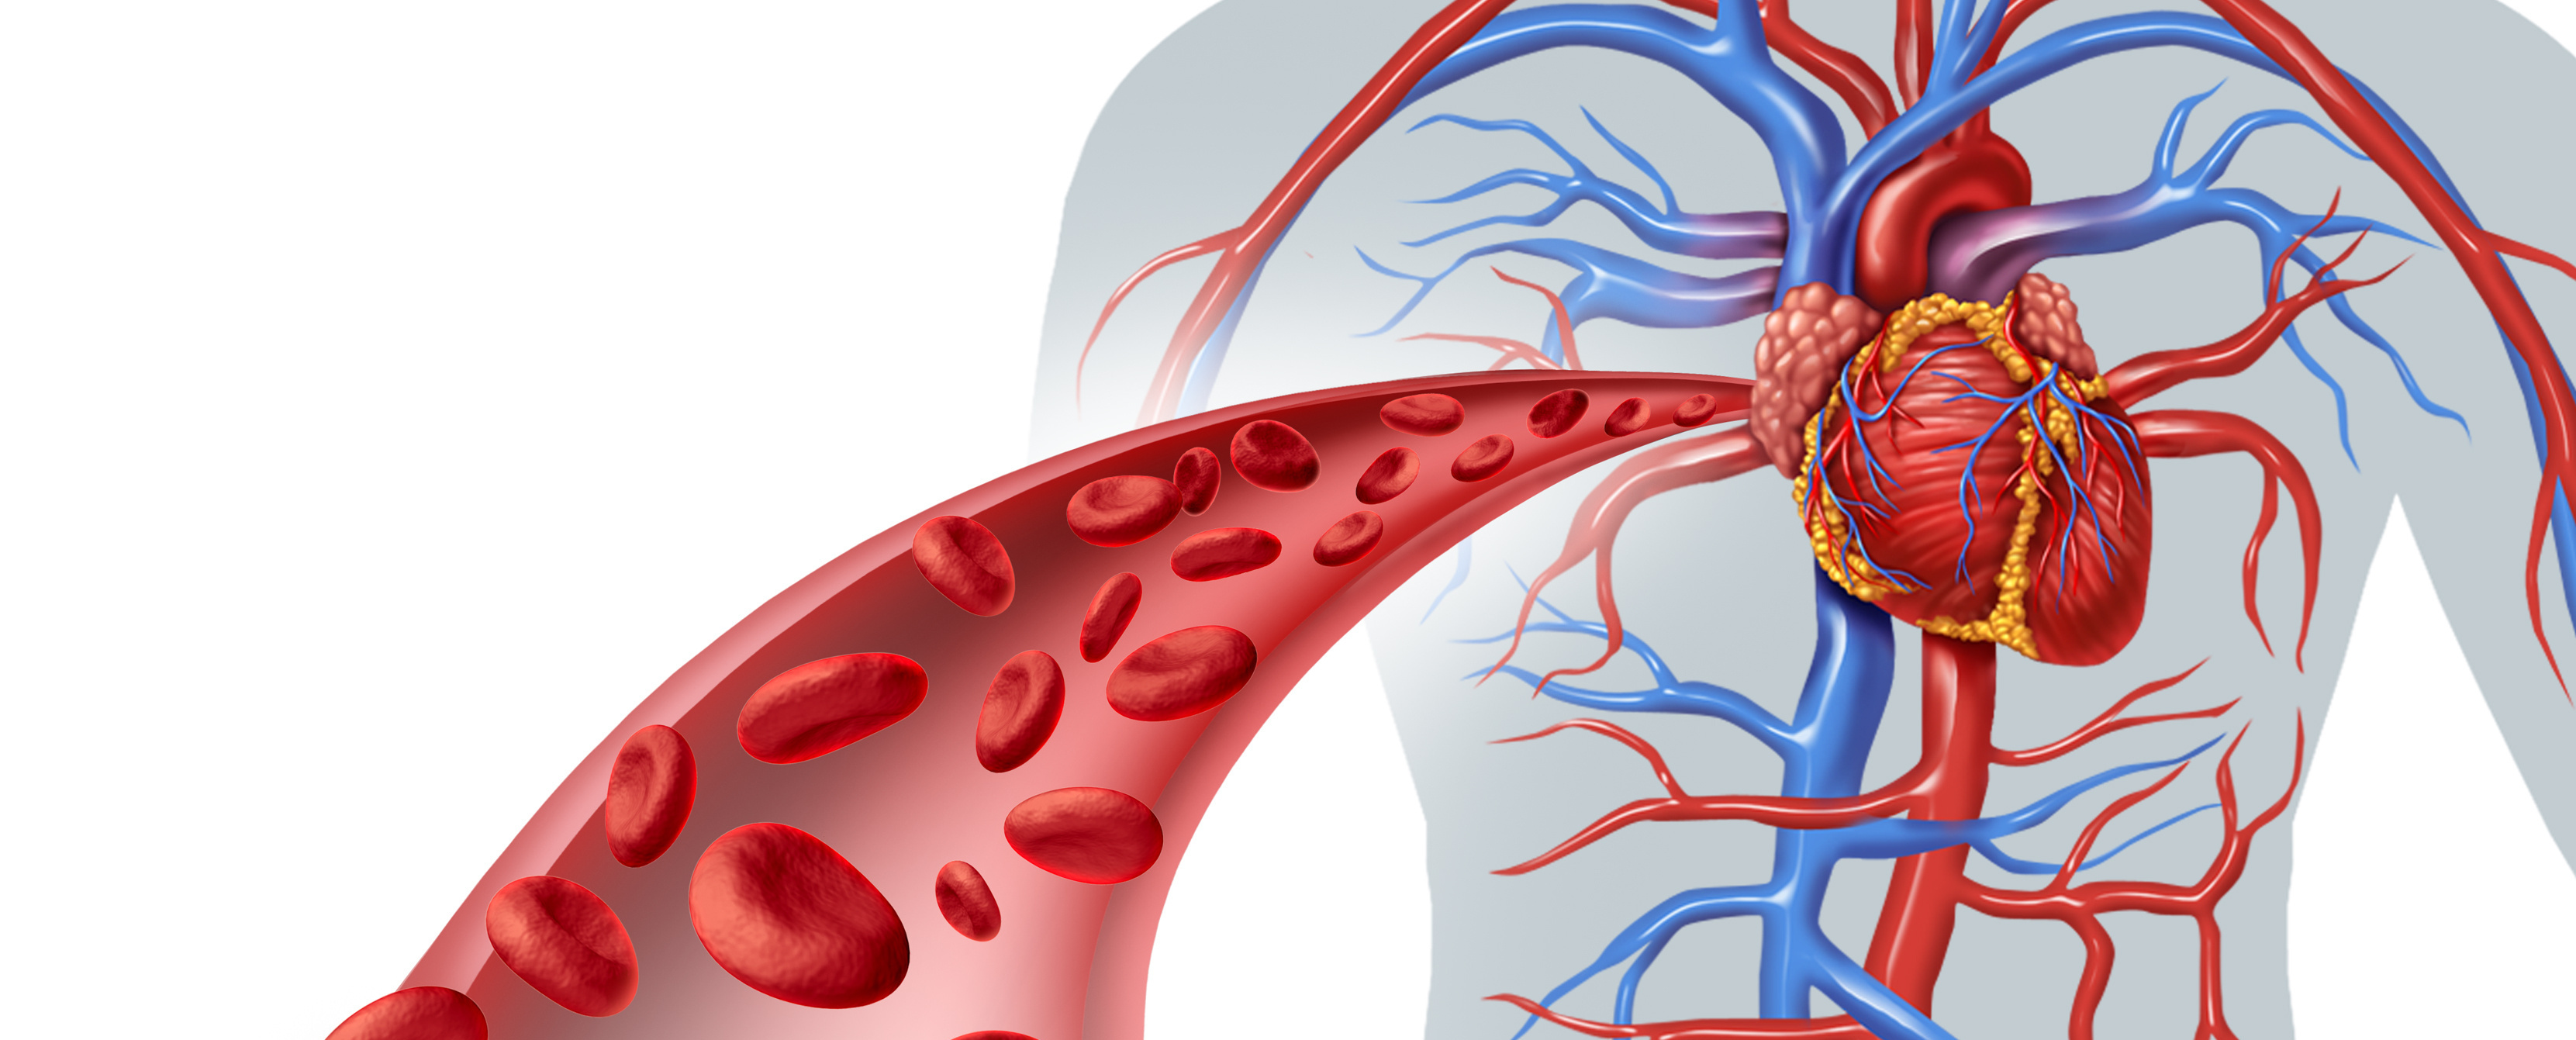 How Parallel Circuits Work in the Body: The Cardiovascular System Requires Low Resistance